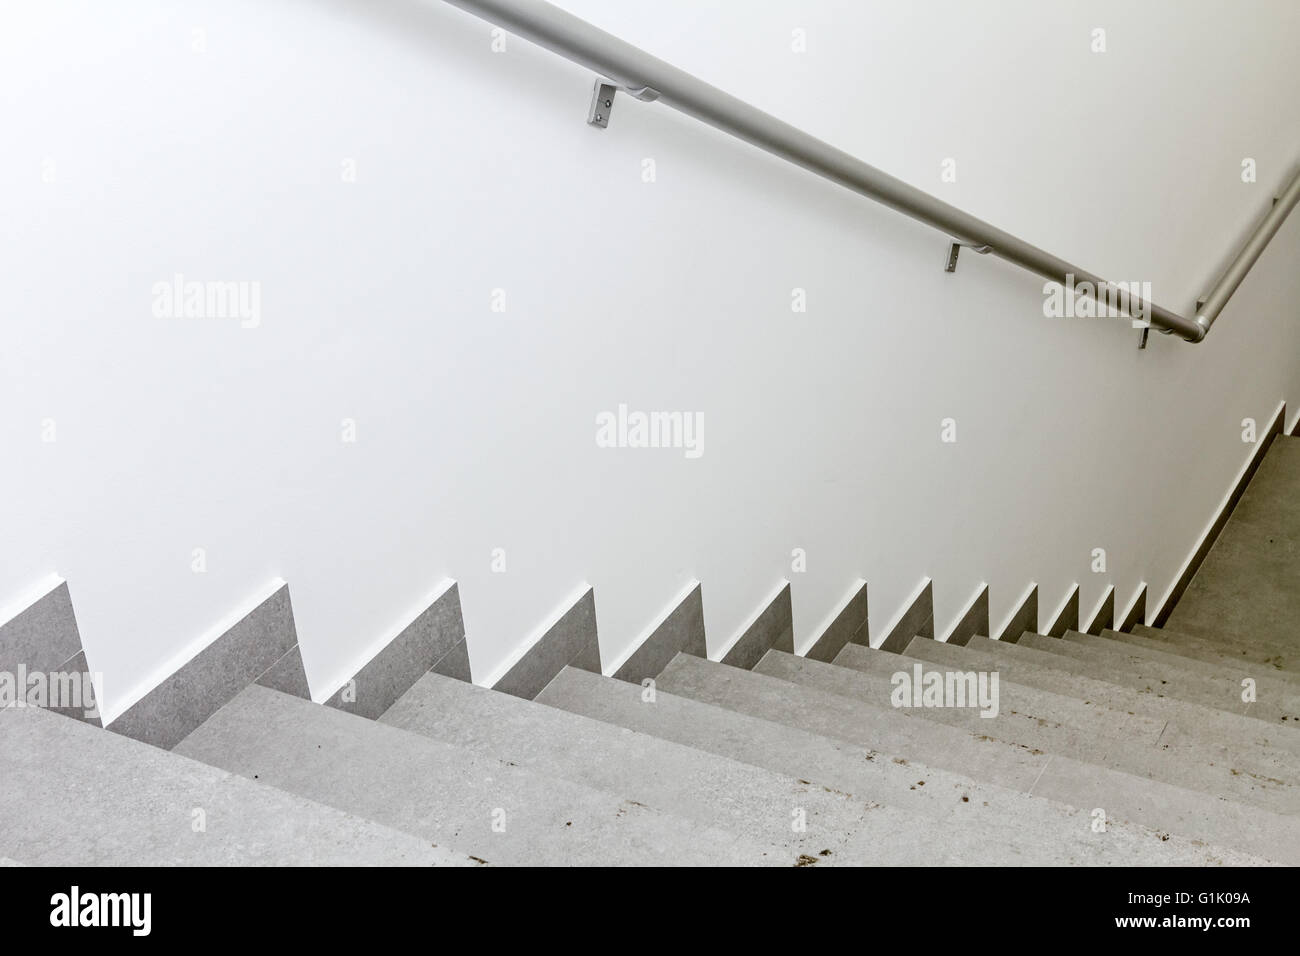 Every building is required to have emergency stairways as safety measure. - Stock Image